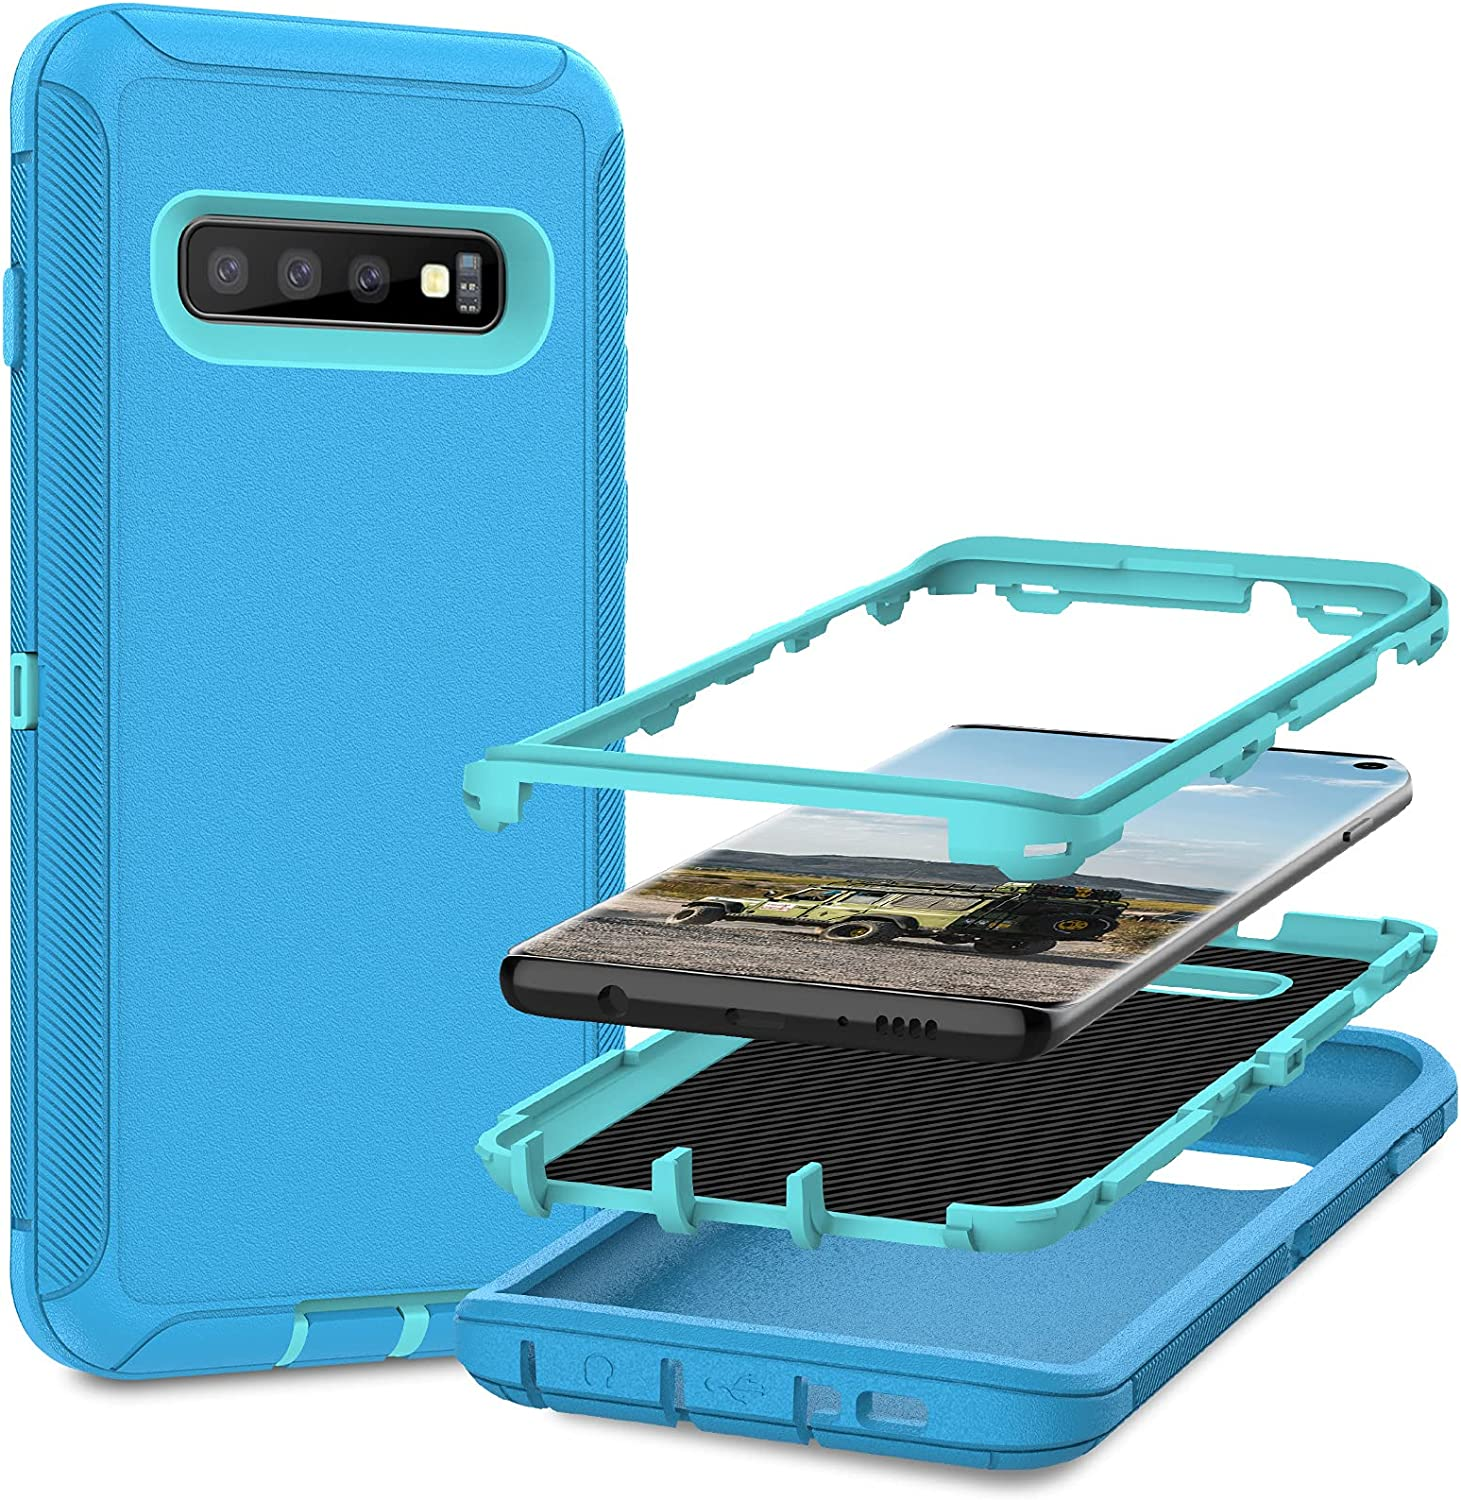 MMHUO for Samsung Galaxy S10 Case,Full Body Heavy Duty Protective Case for Samsung Galaxy S10 Case,3 in 1 Dust & Shock-Proof Phone Case for Samsung Galaxy S10 Hard Cover,Mint/Sea Green